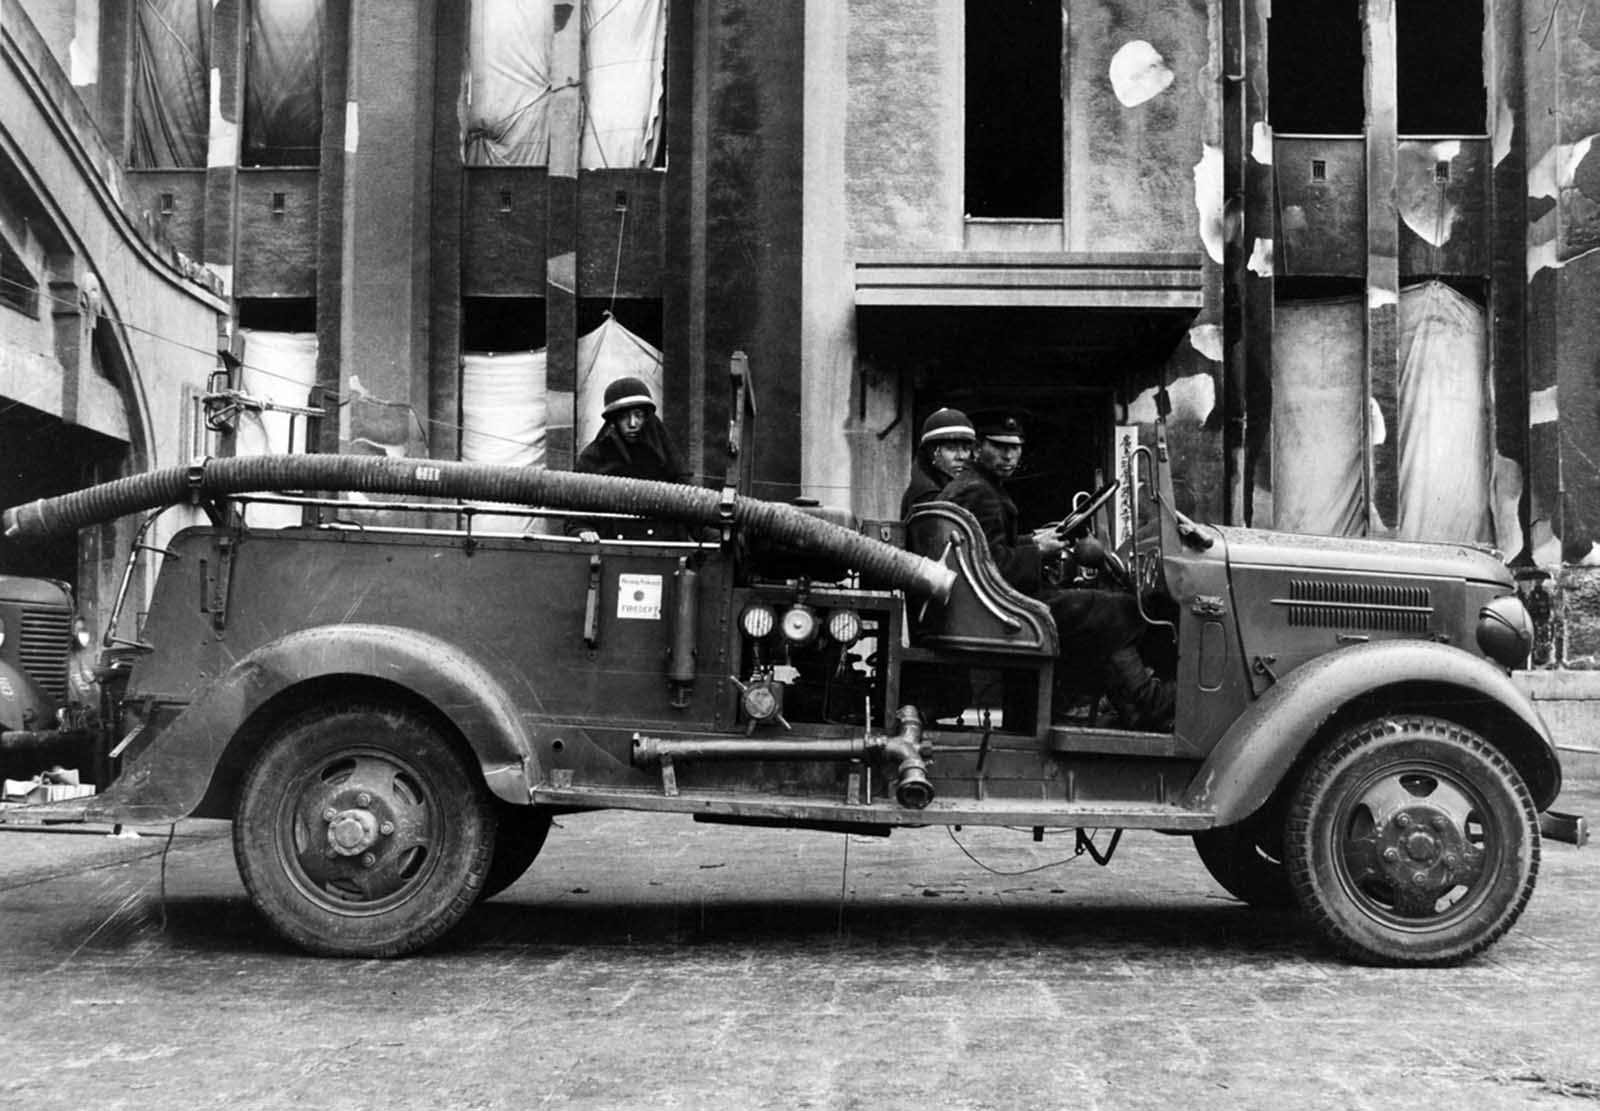 One of several Japanese fire engines transferred to Hiroshima shortly after the bombing.